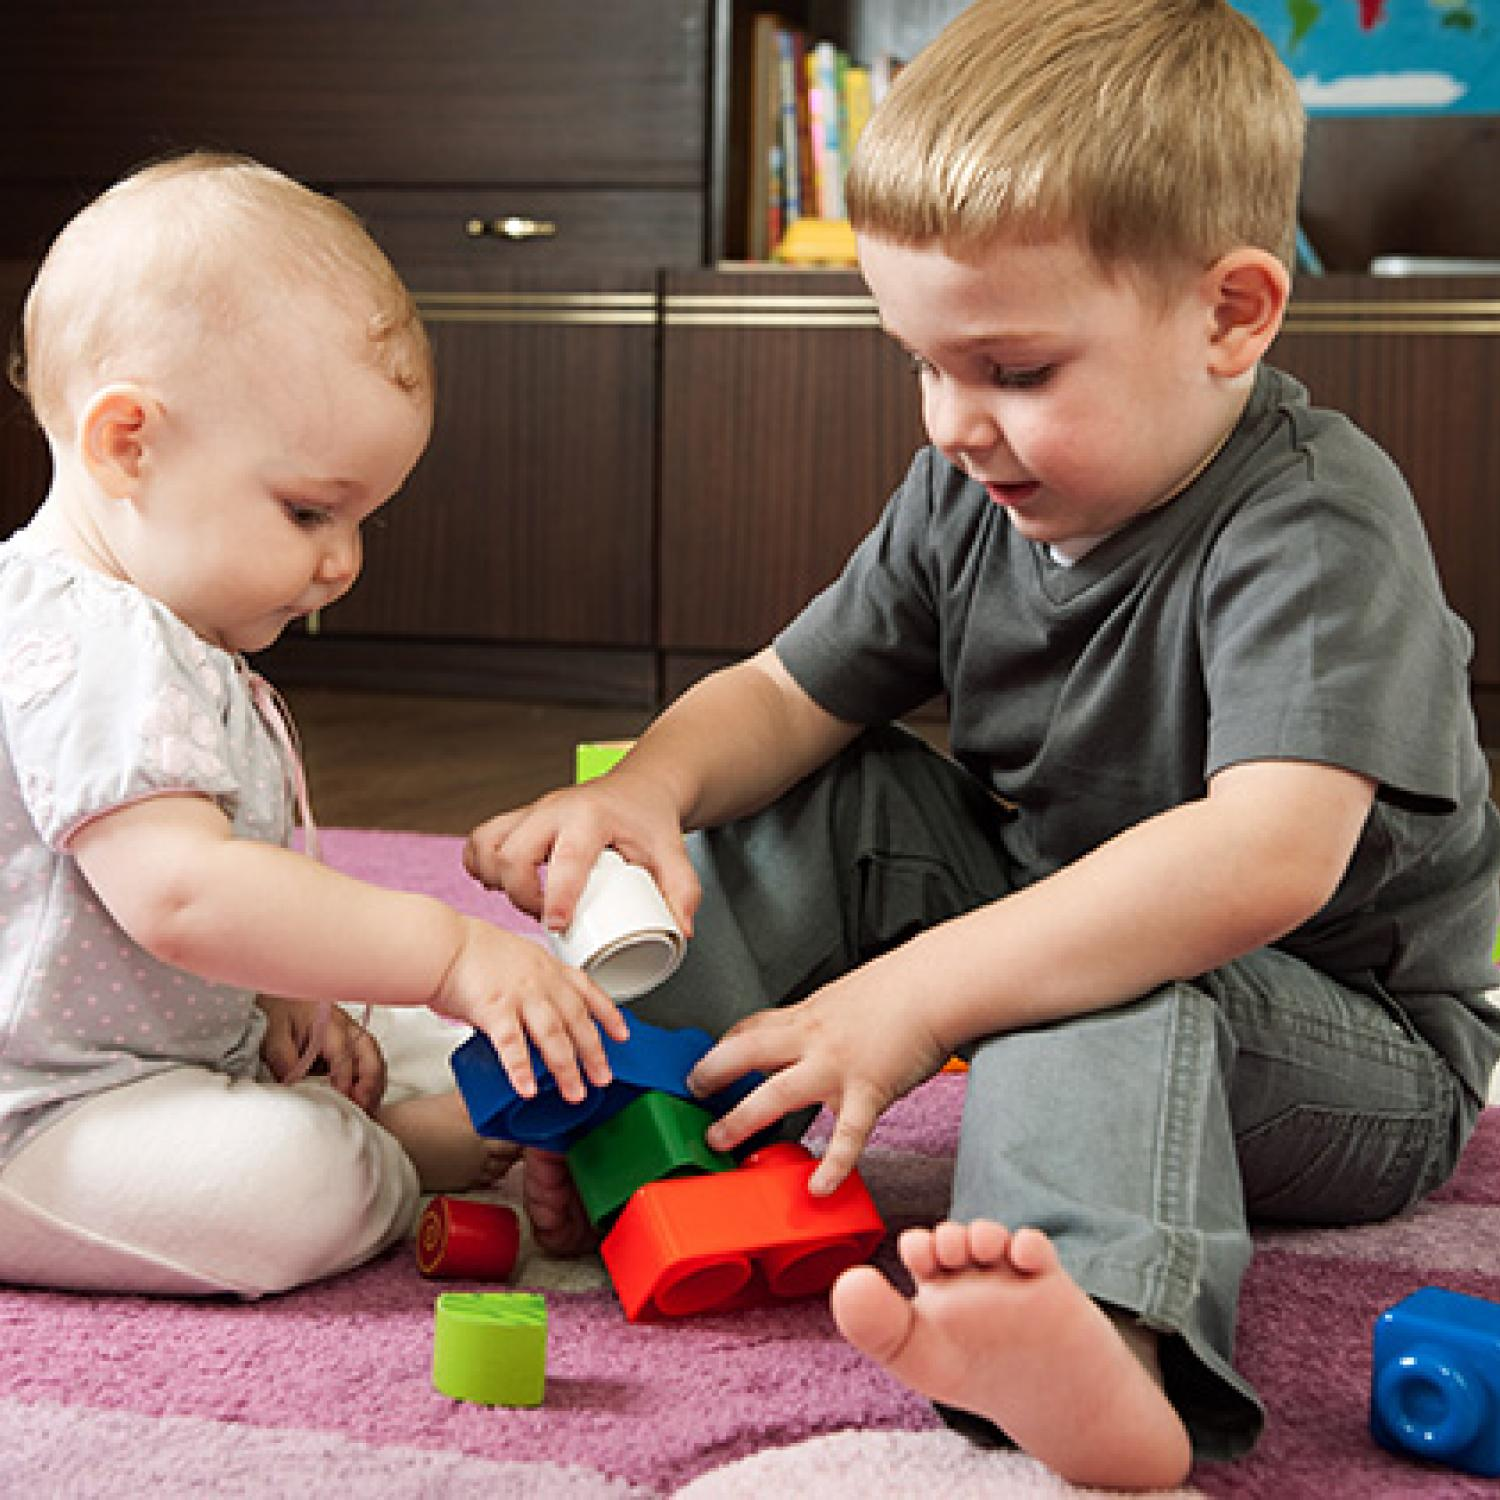 Toddler Gifts That Won t Hurt Baby Siblings